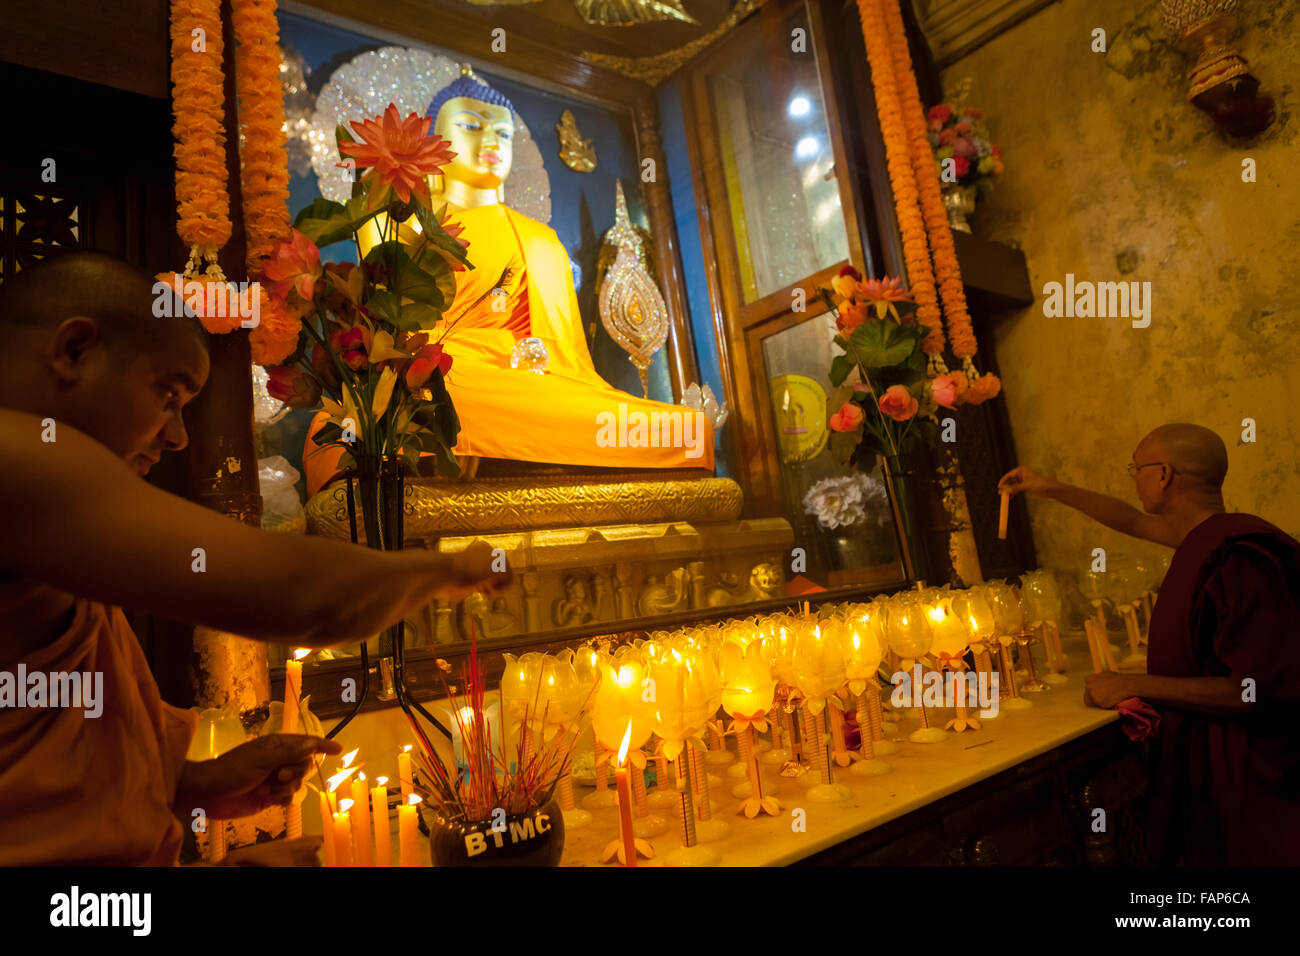 Monks offering praying candles in front of golden Buddha statue inside Mahabodhi temple chamber in Bodhgaya, India. - Stock Image